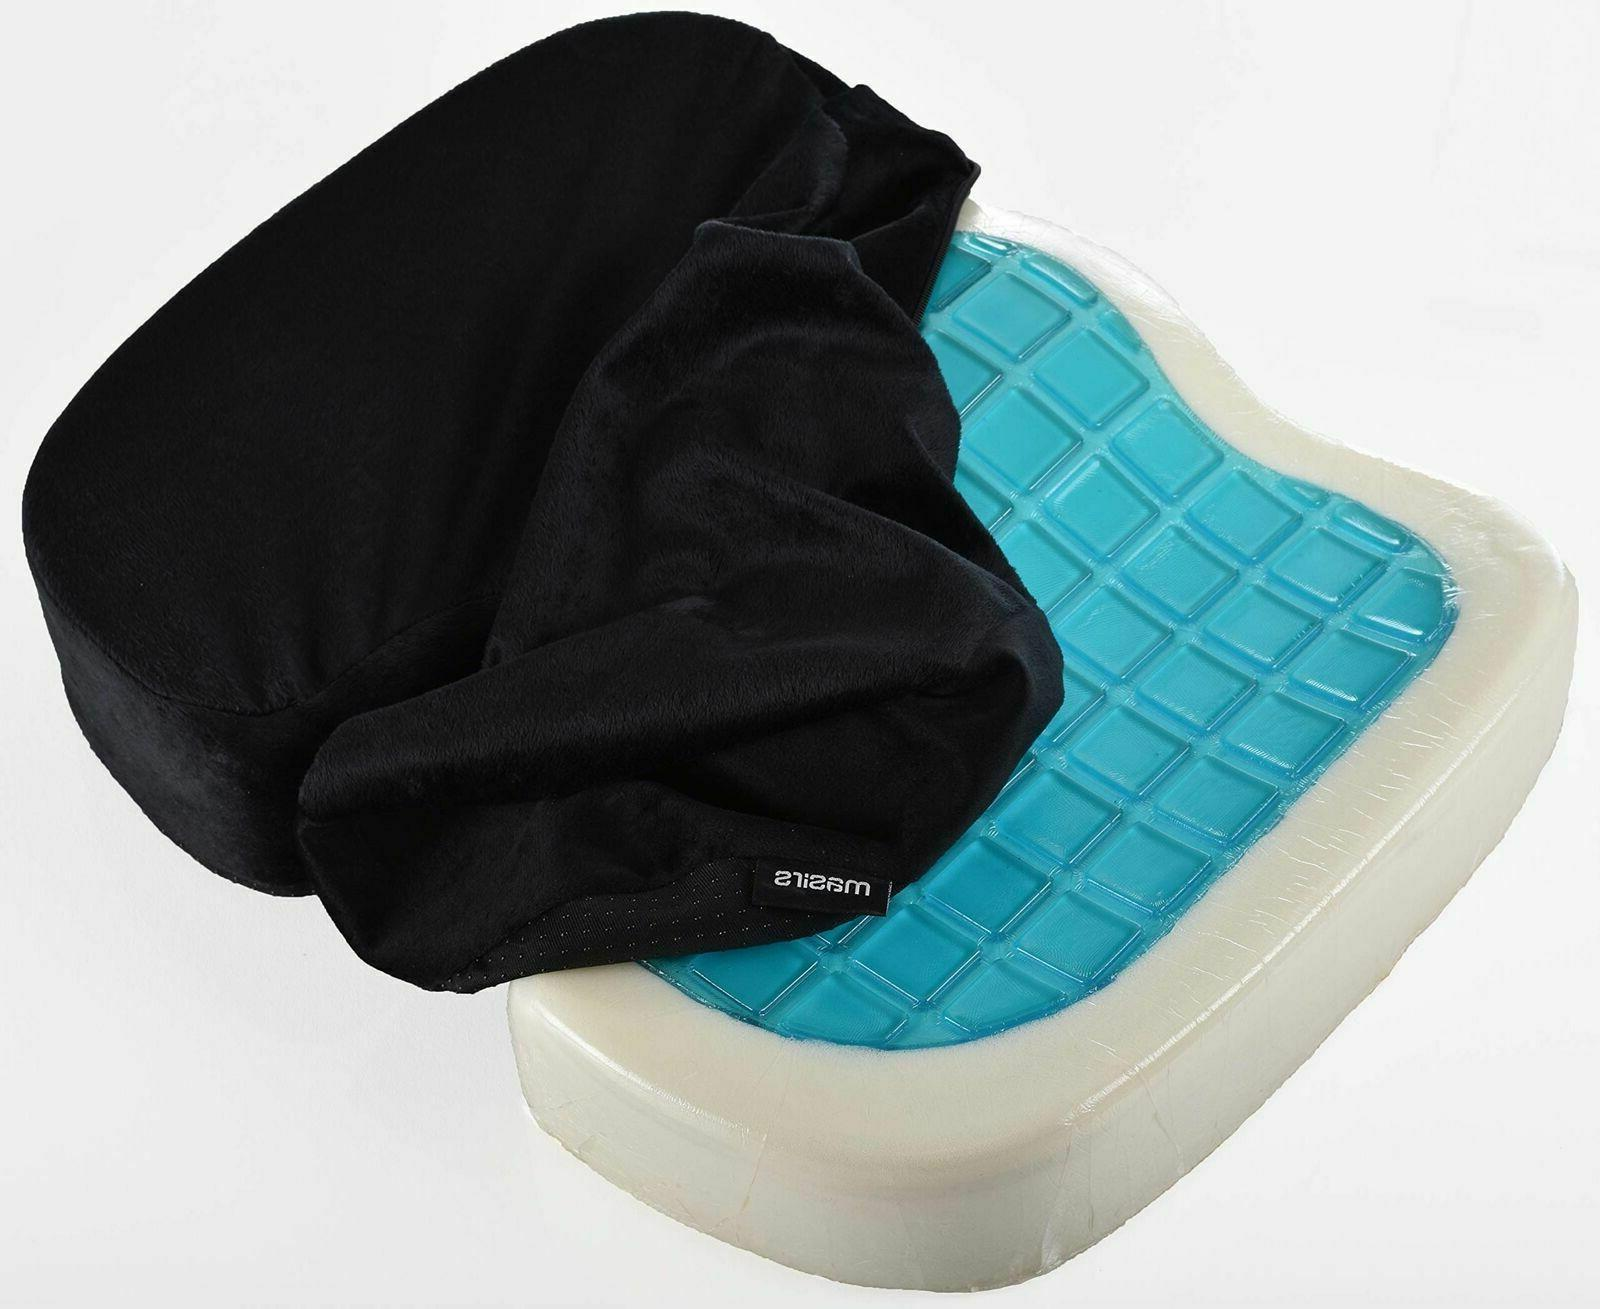 PERFECT Orthopedic Memory Gel Seat Cushion Office Car Home